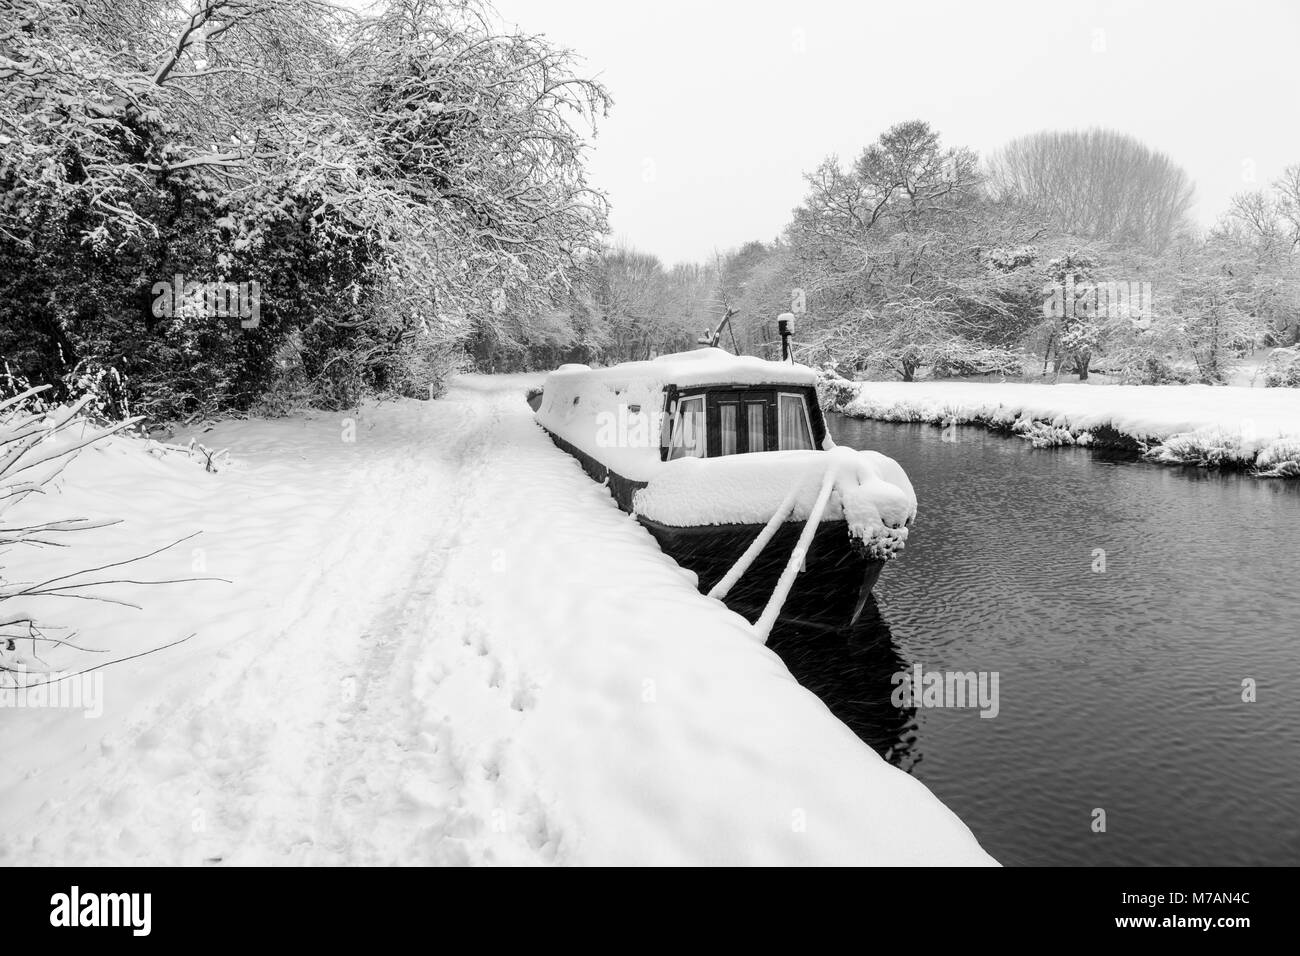 A Narrowboat covered in snow can be seen moored up on the Llangollen Canal - Stock Image